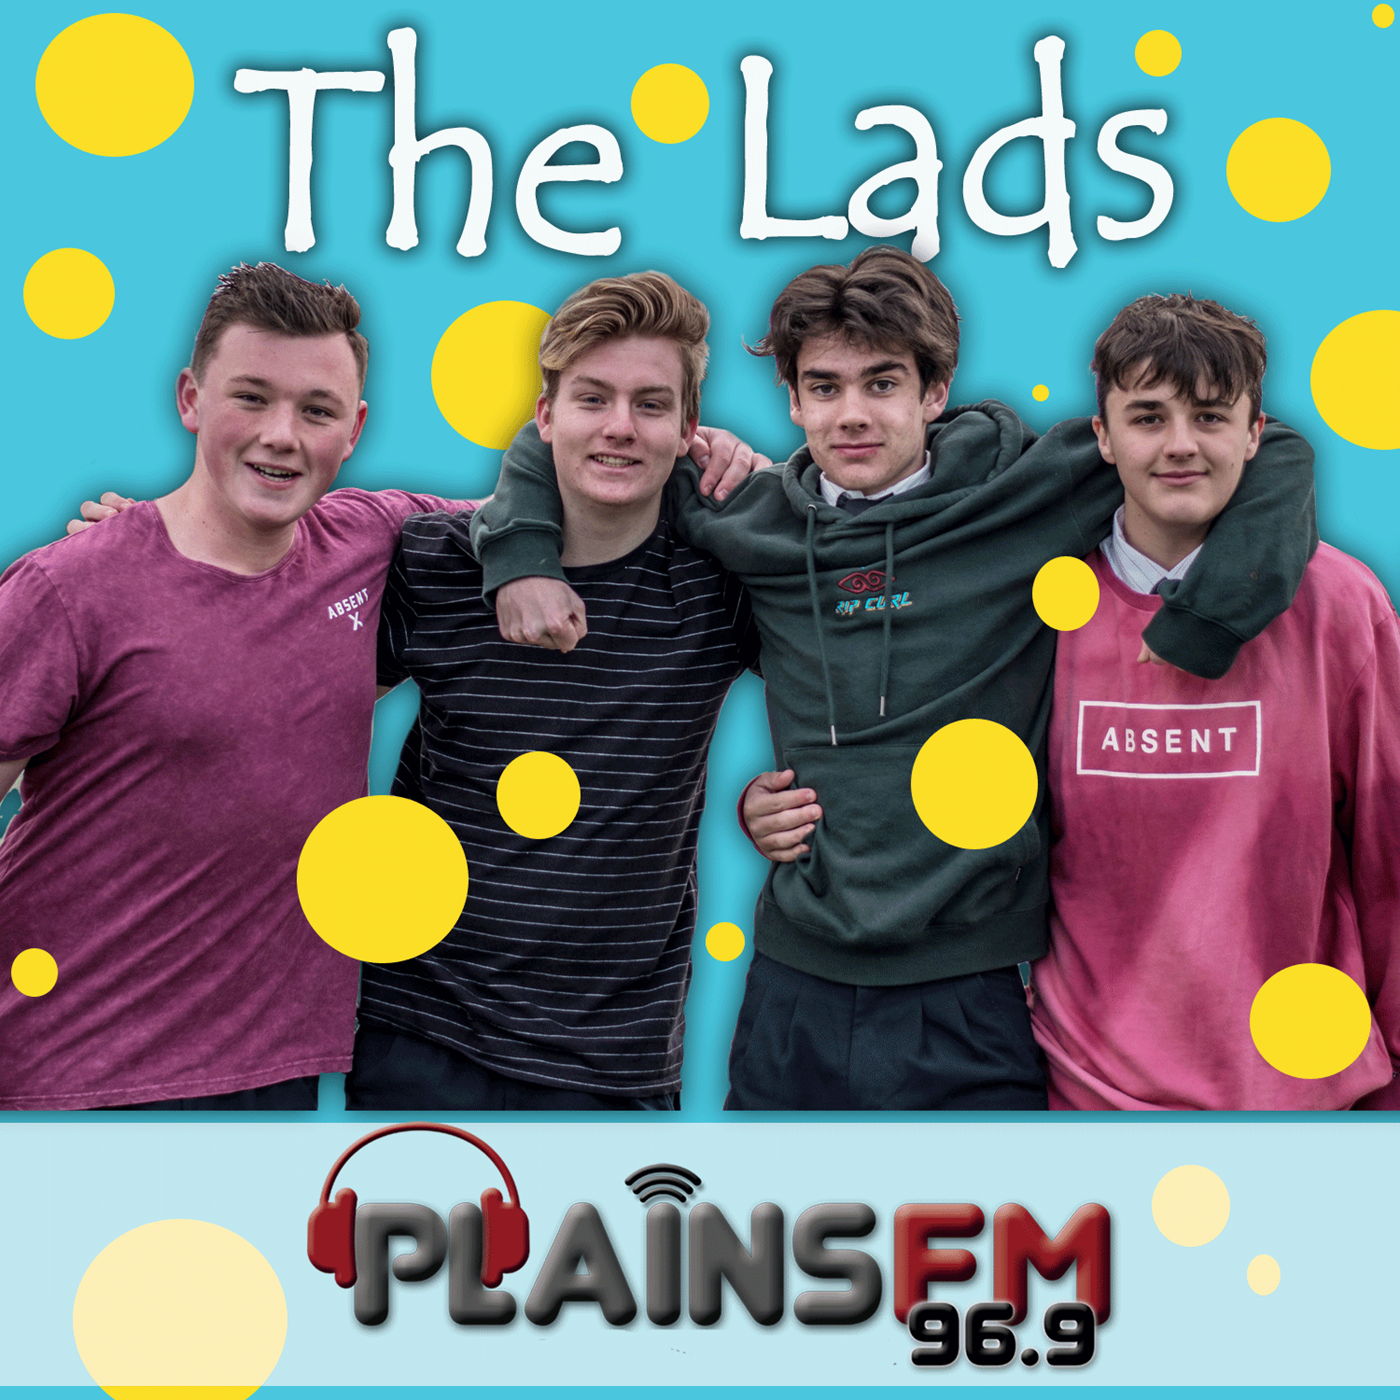 The Lads-18-09-2019 - Spring Vibes